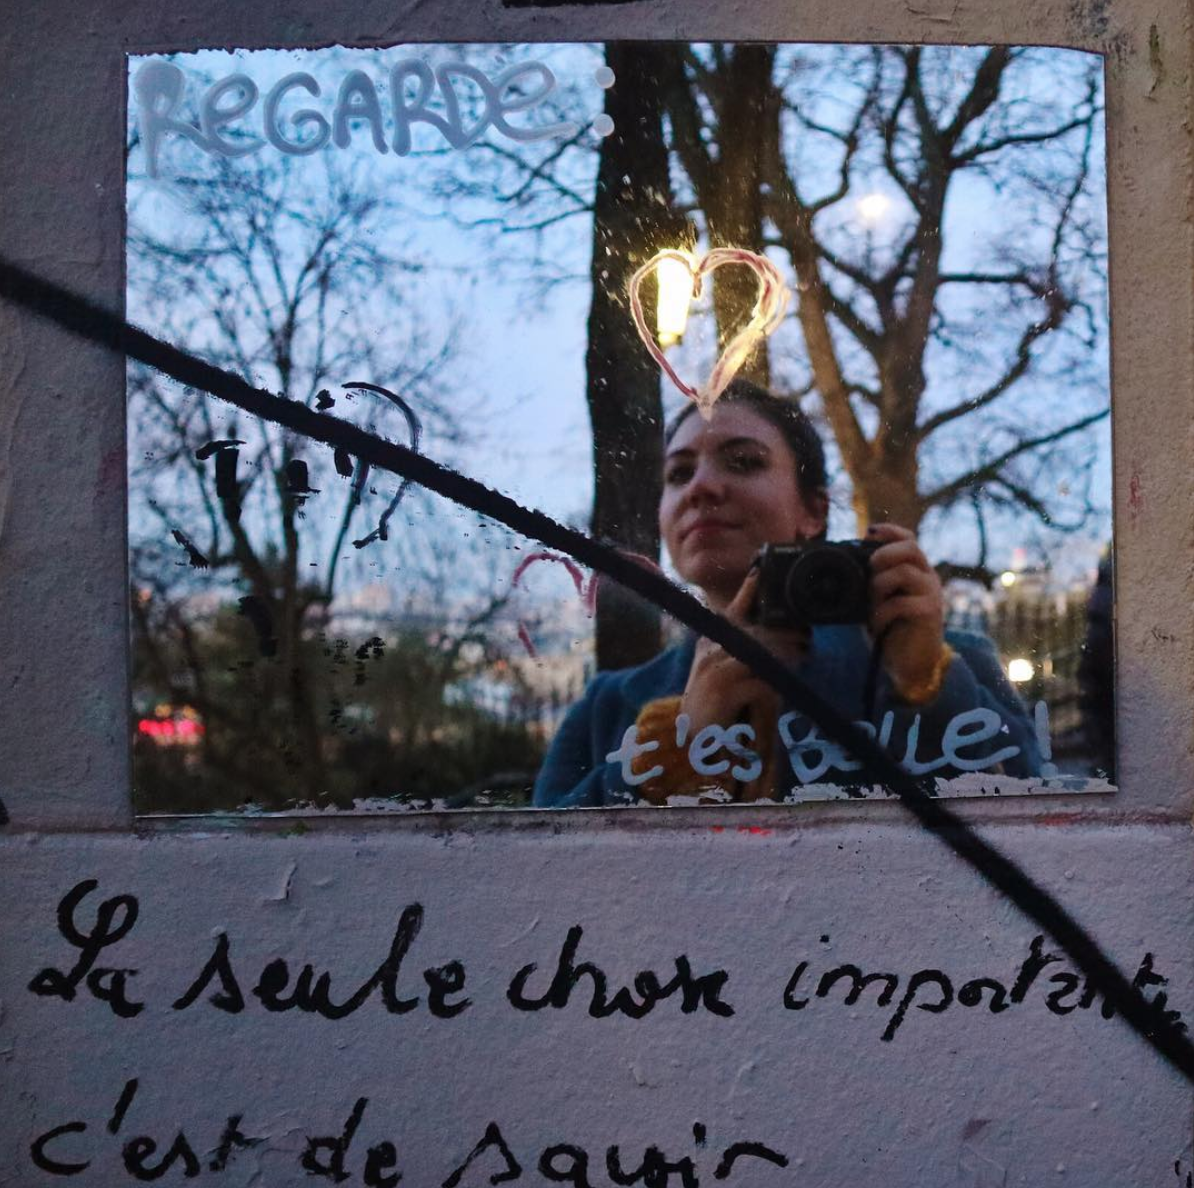 """Regarde: t'es belle. - Growing up, I took a window marker to all of my mirrors and scribbled quotes and doodles. Some highlights included Marilyn Monroe, The Beatles RENT, and the famous B. Davis coda from One Tree Hill (because I was 15, OKAY?!?!?!) They were acts of affirmation. But they were also a way to cover up; to fragment and alter what I saw in the mirror with something I thought was better.I spent most of my teen years feeling really uncomfortable in my body. And, I don't talk about it much on the internet because it's, well, v uncomfy! I used to stand in front the mirror where Marilyn told me to smile and John told me to Let It Be and feel just a little more okay. My relationship with my body has changed a lot over the last 10 years (🙌🏻🙌🏻). But, occasionally I find myself looking into mirrors searching for Marilyn or John or B. Davis to tell me something I already know.So, why share all of this? Because I know I'm not the only one who looks into mirrors for something other than themselves occasionally. Because diet culture in the new year is seriously MESSED UP. Because I know there's a girl out there who doesn't have a magic marker to plus up her mirrors and needs someone to say, """"Look, I understand."""" But, mostly to say, """"Regarde: t'es belle."""" *look, you are beautiful*✨"""